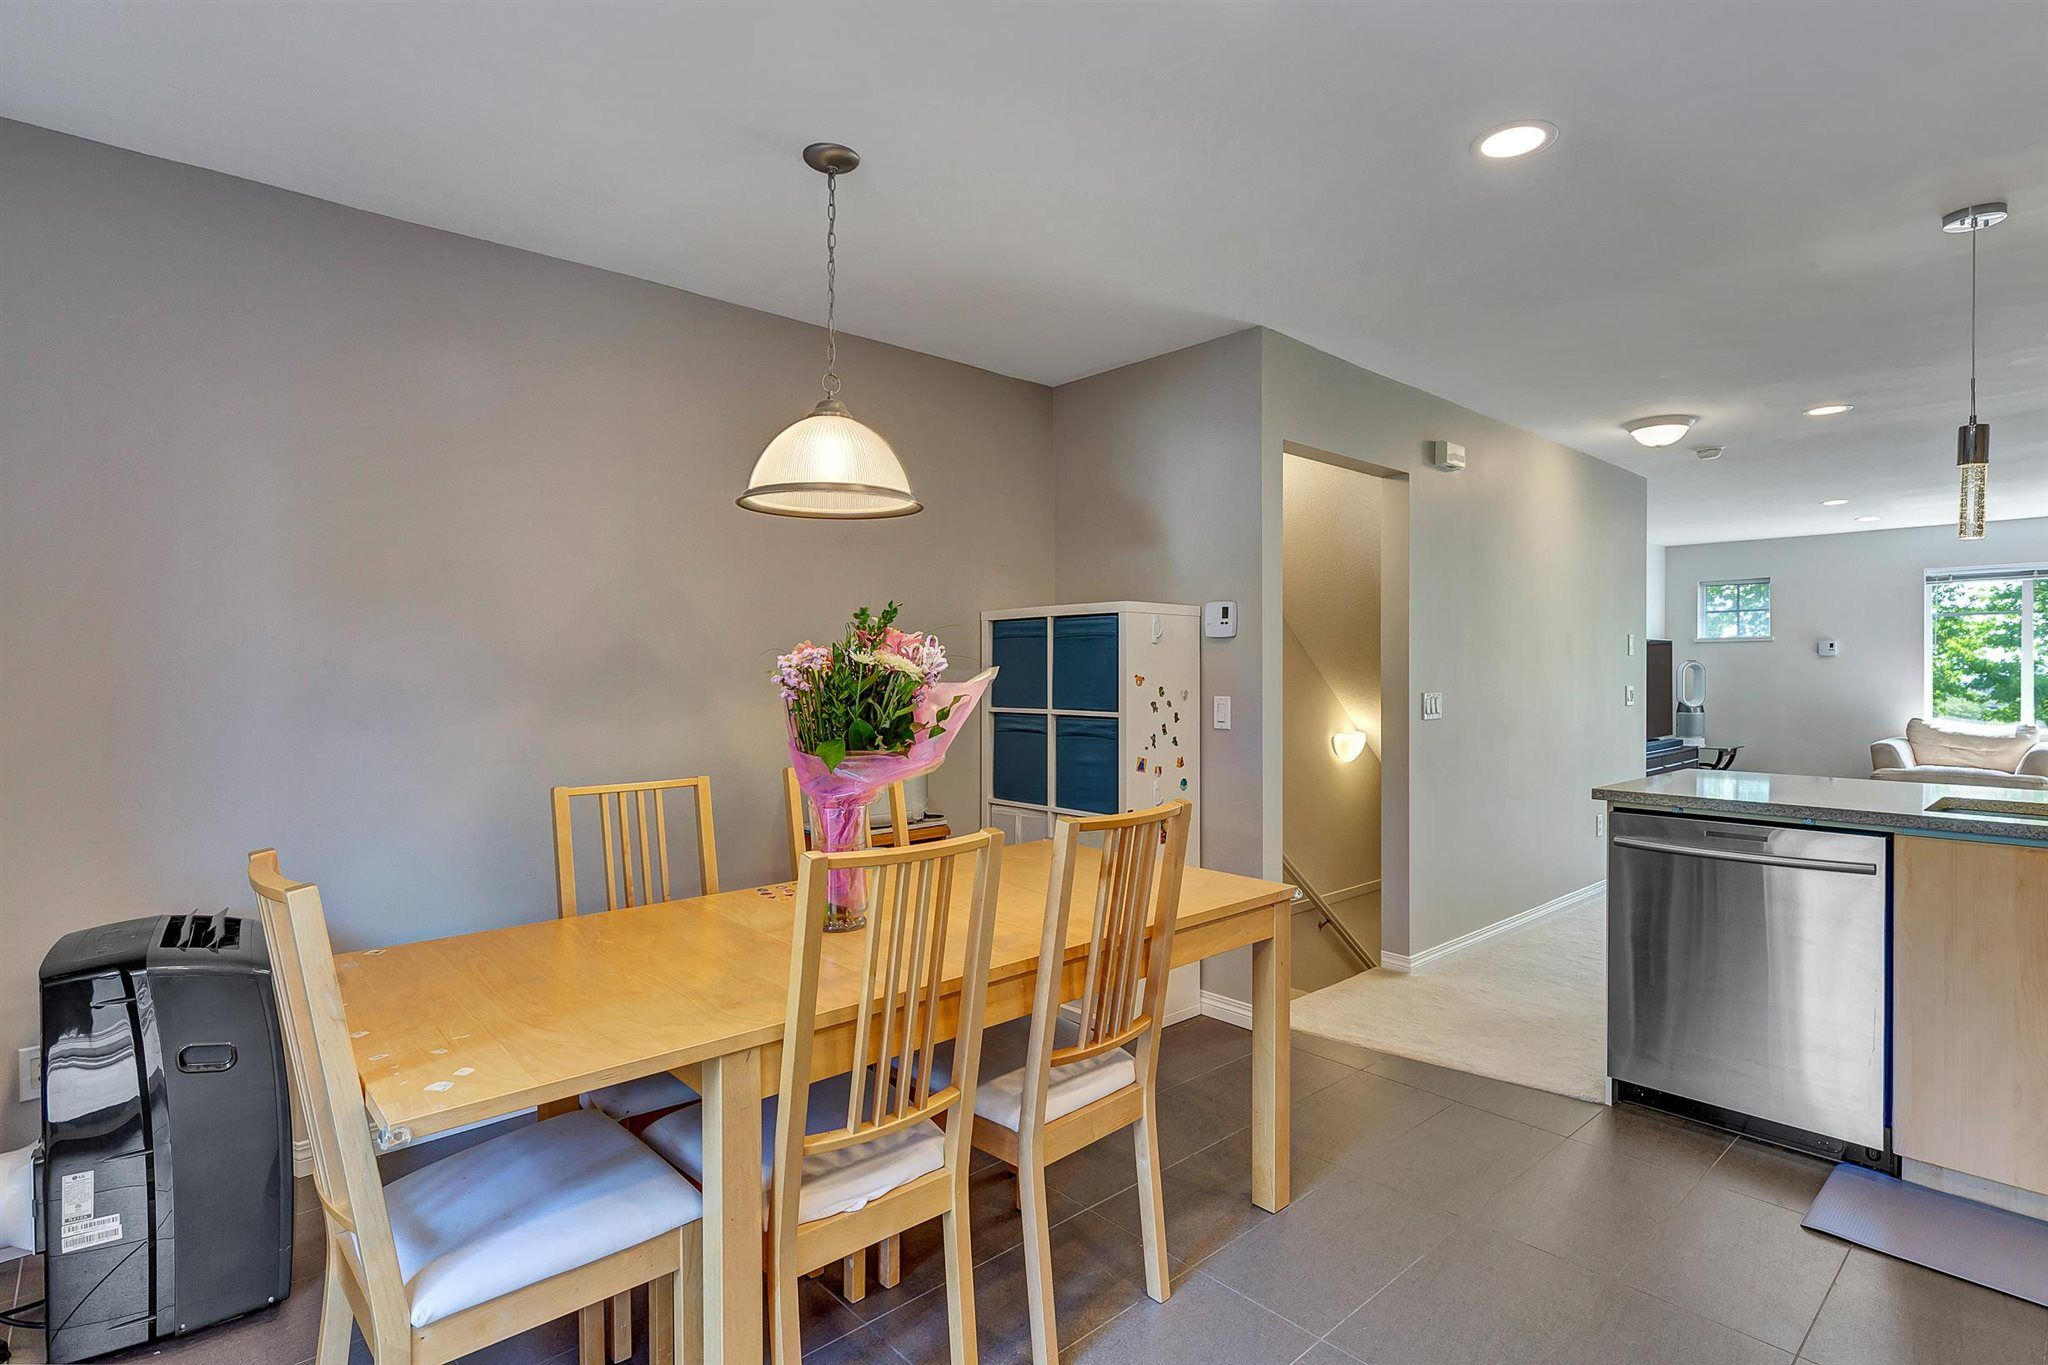 """Photo 16: Photos: 9 15871 85 Avenue in Surrey: Fleetwood Tynehead Townhouse for sale in """"Huckleberry"""" : MLS®# R2606668"""